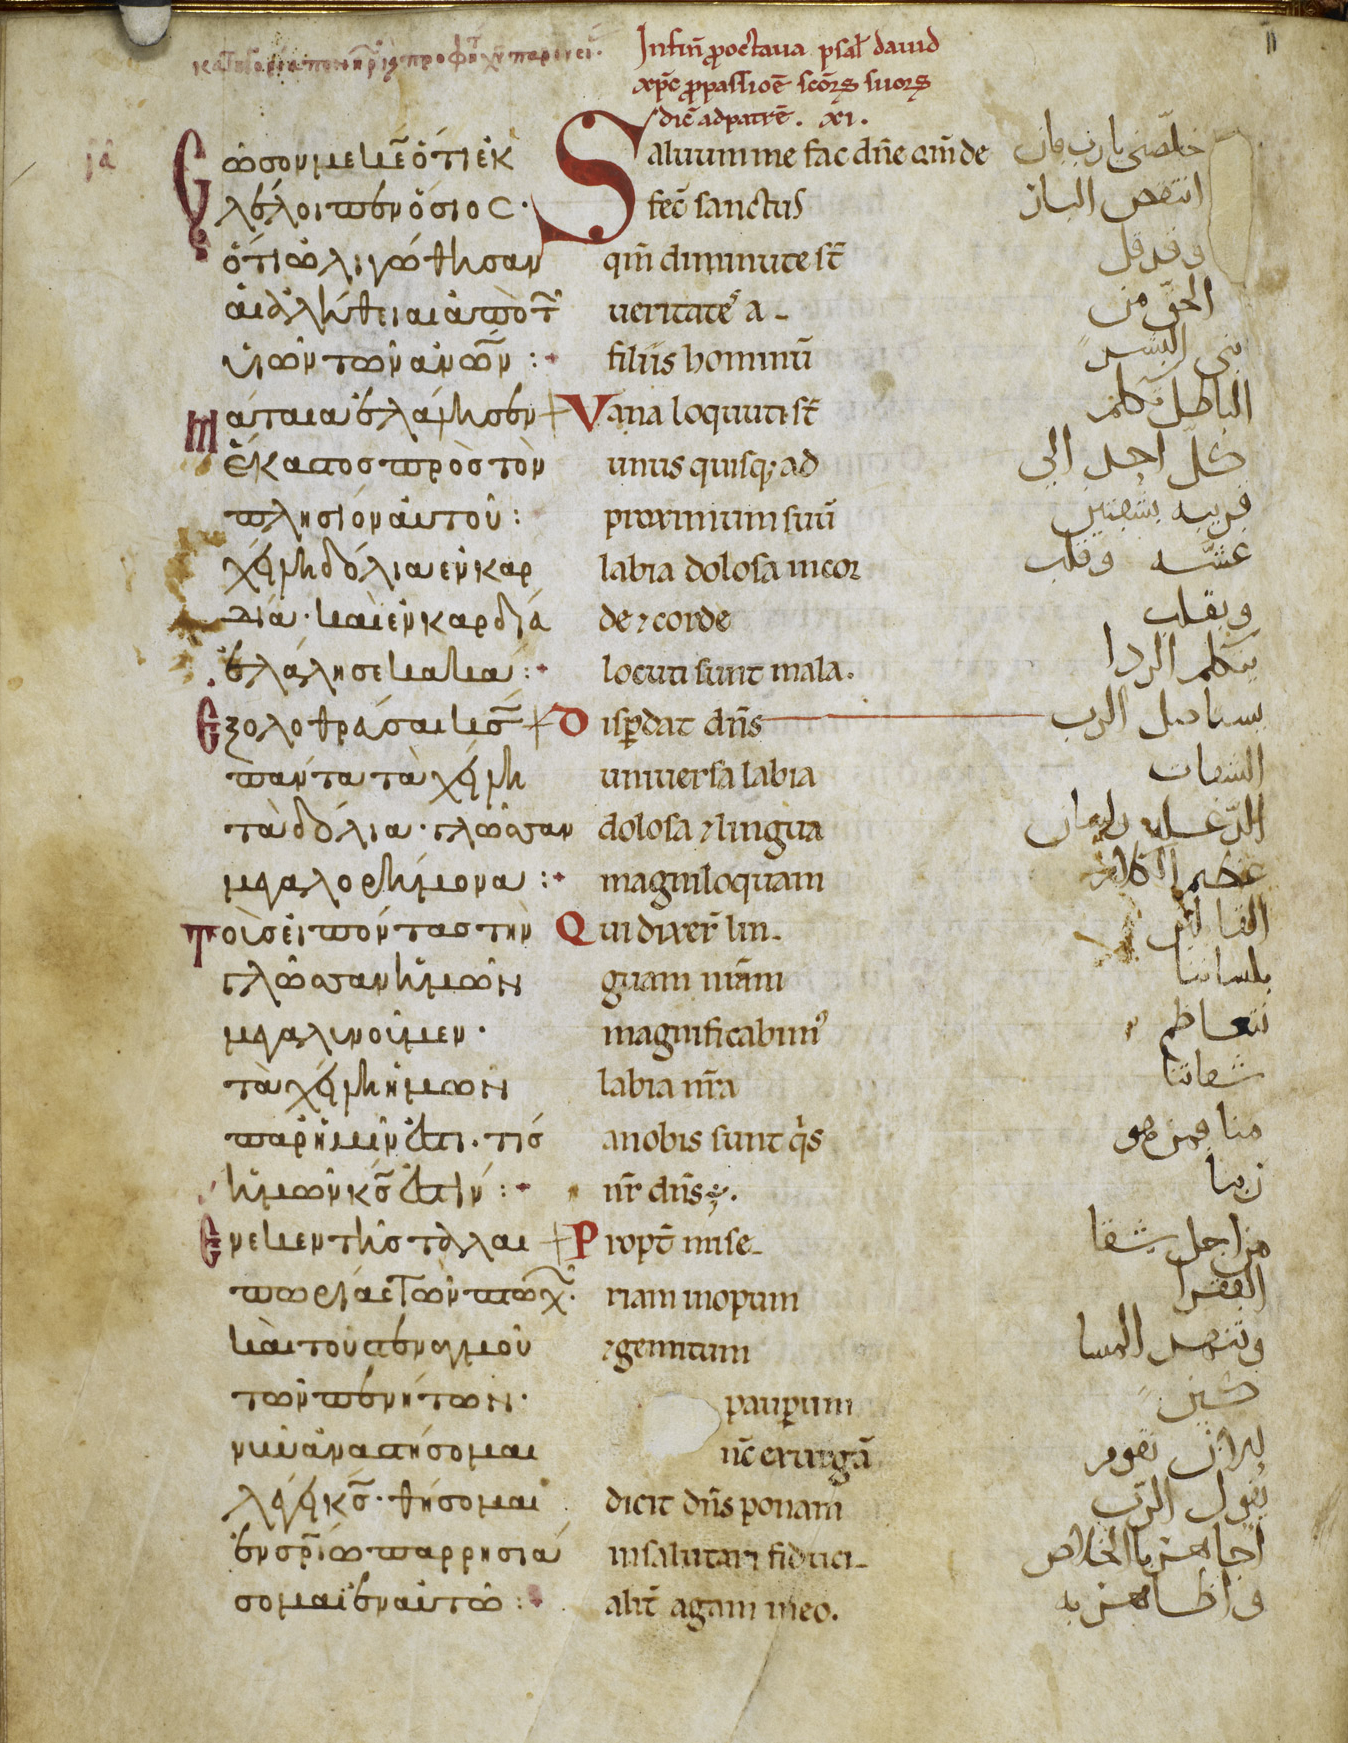 Bron: Harley Trilingual Psalter (before 1153). British Library, Harley MS 5786.